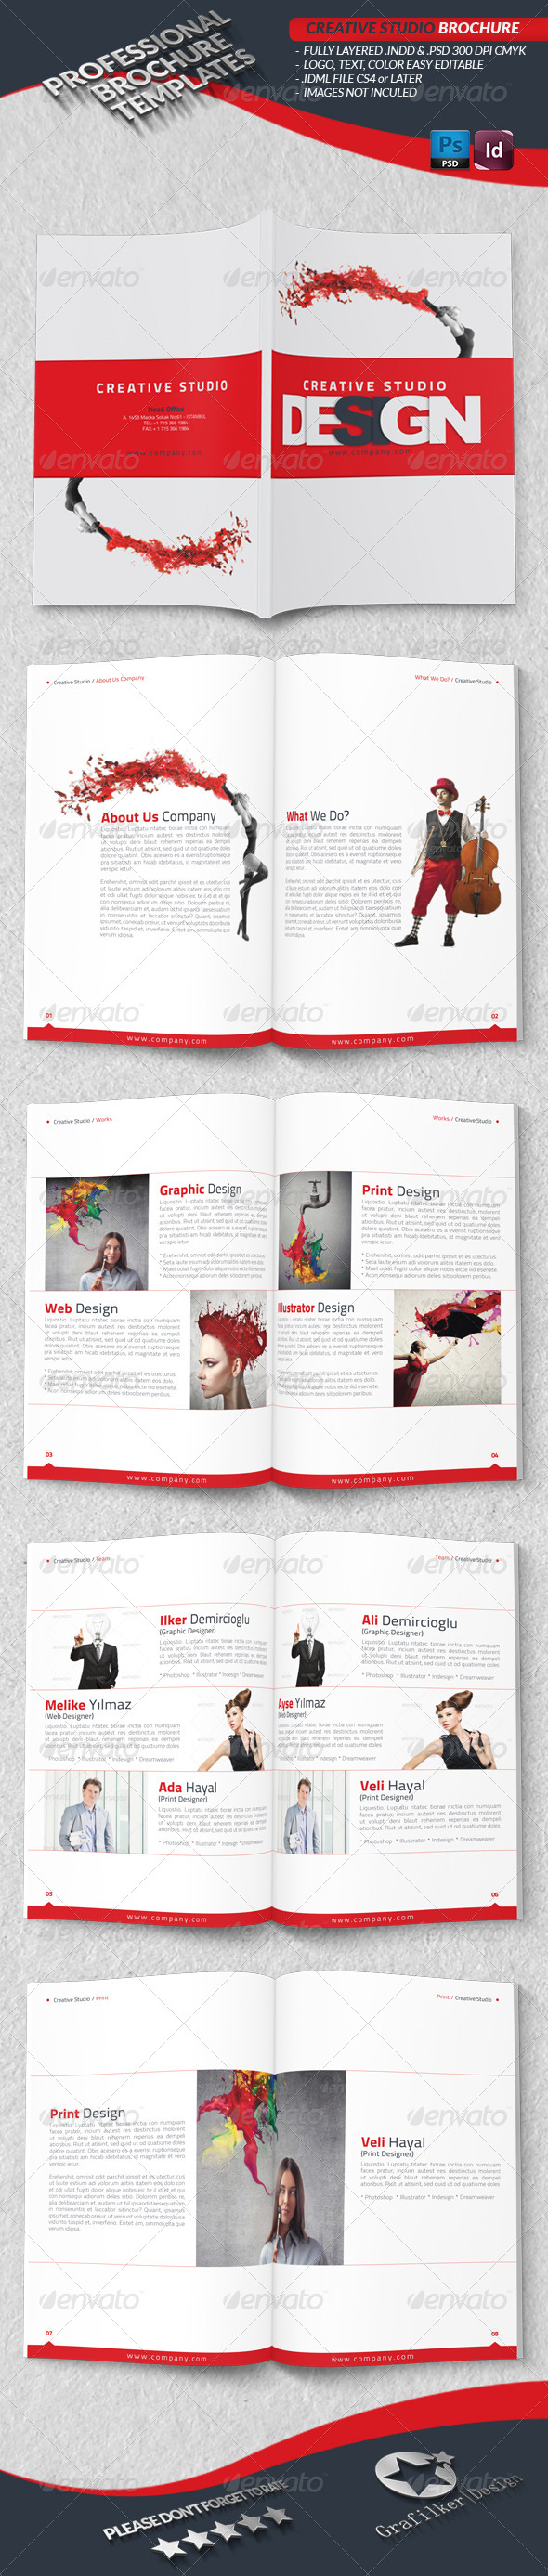 GraphicRiver Creative Studio Brochure 4146924